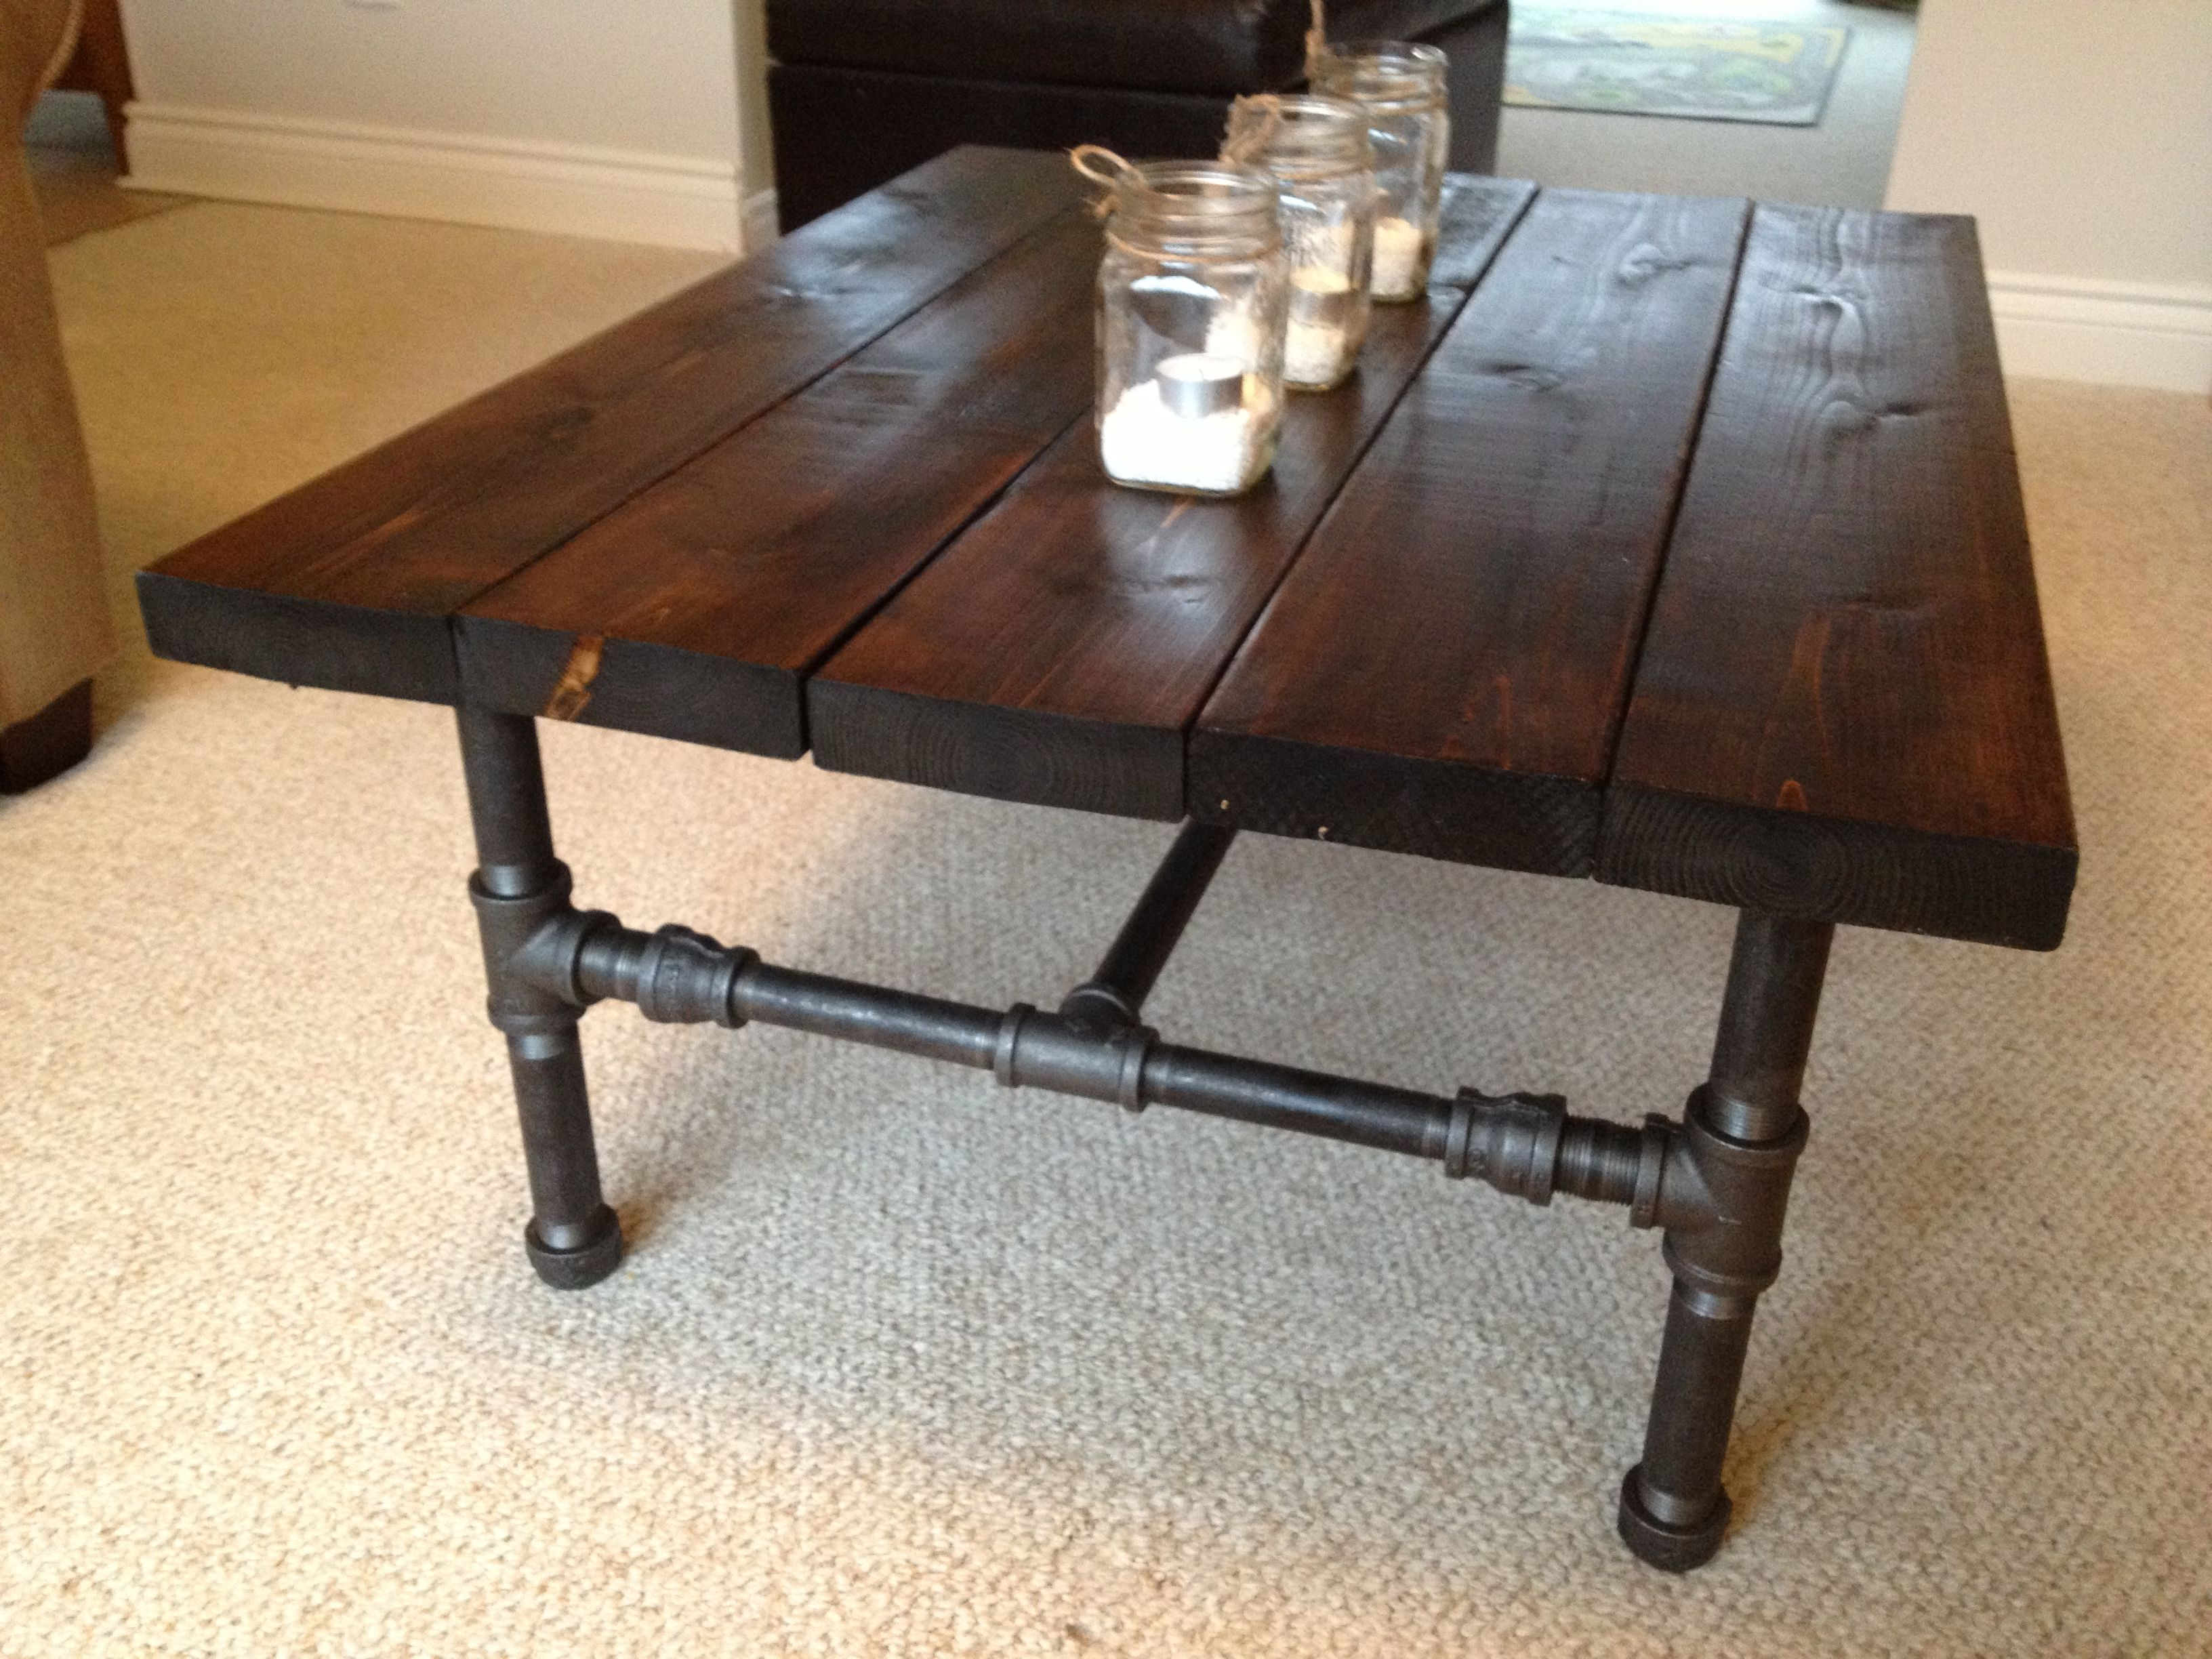 Best 25 Iron coffee table ideas on Pinterest